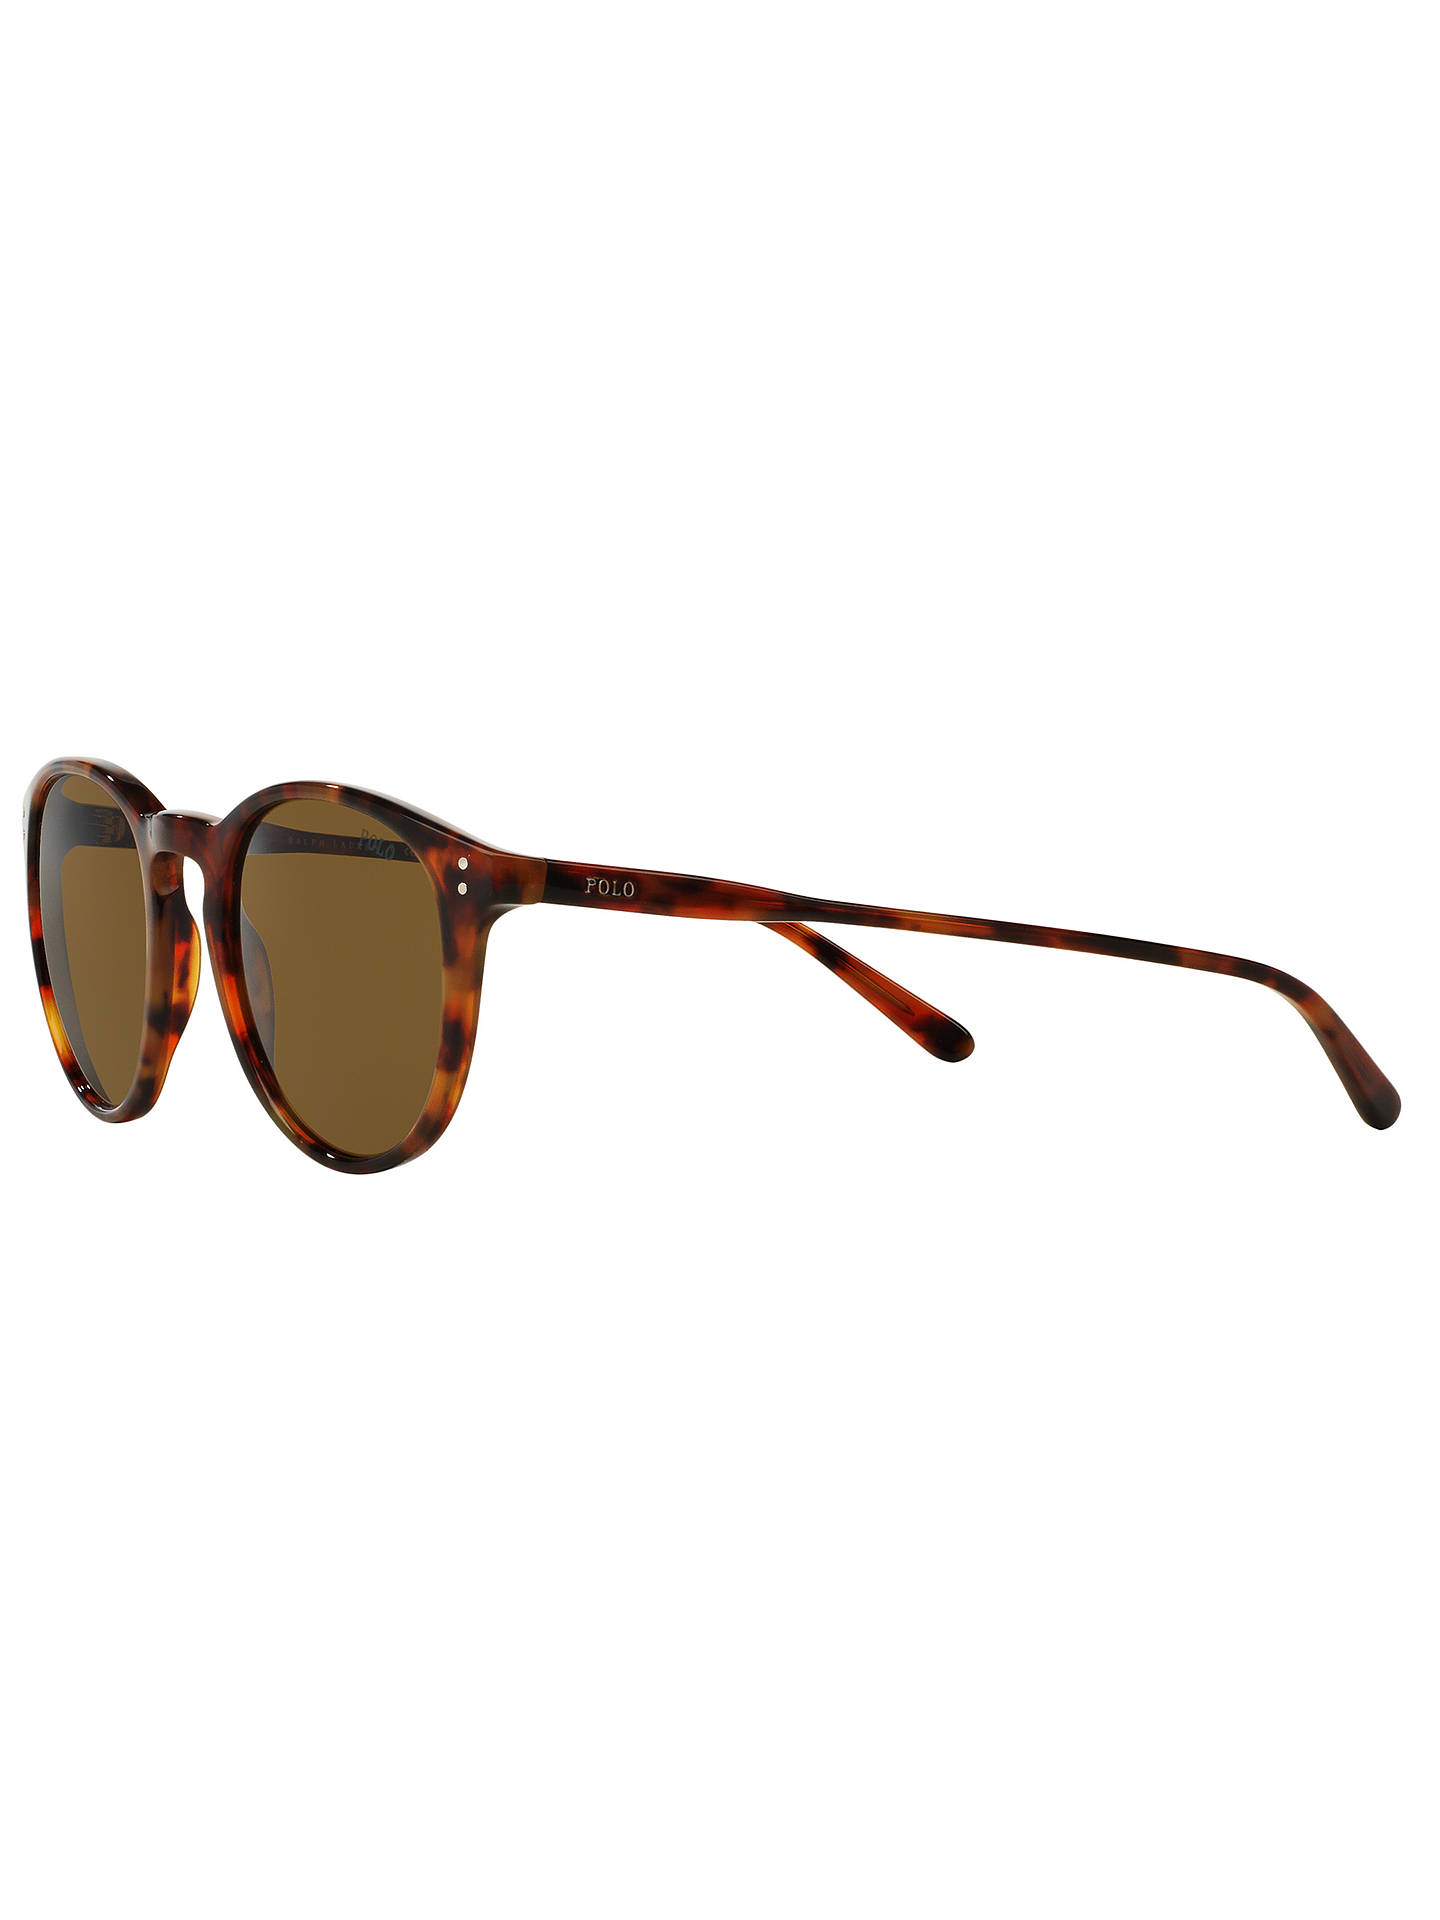 BuyPolo Ralph Lauren PH4110 Men's Oval Sunglasses, Tortoise Online at johnlewis.com